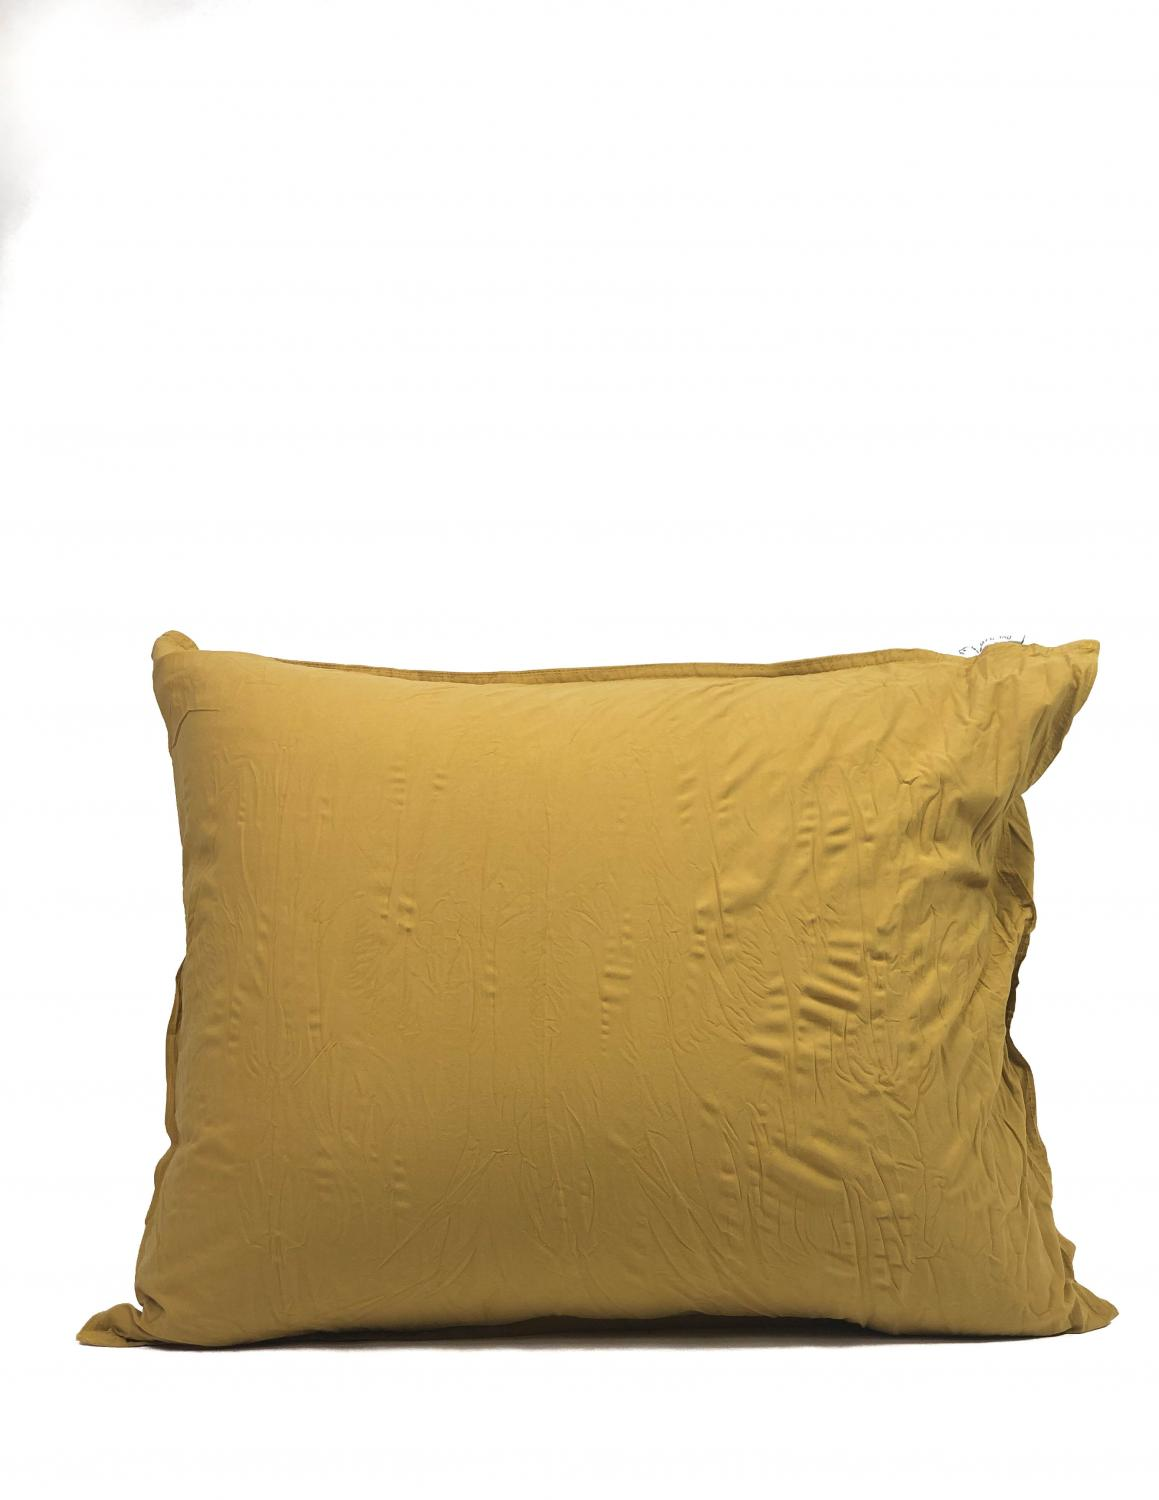 Pillowcase Crinkle Mustard Gold